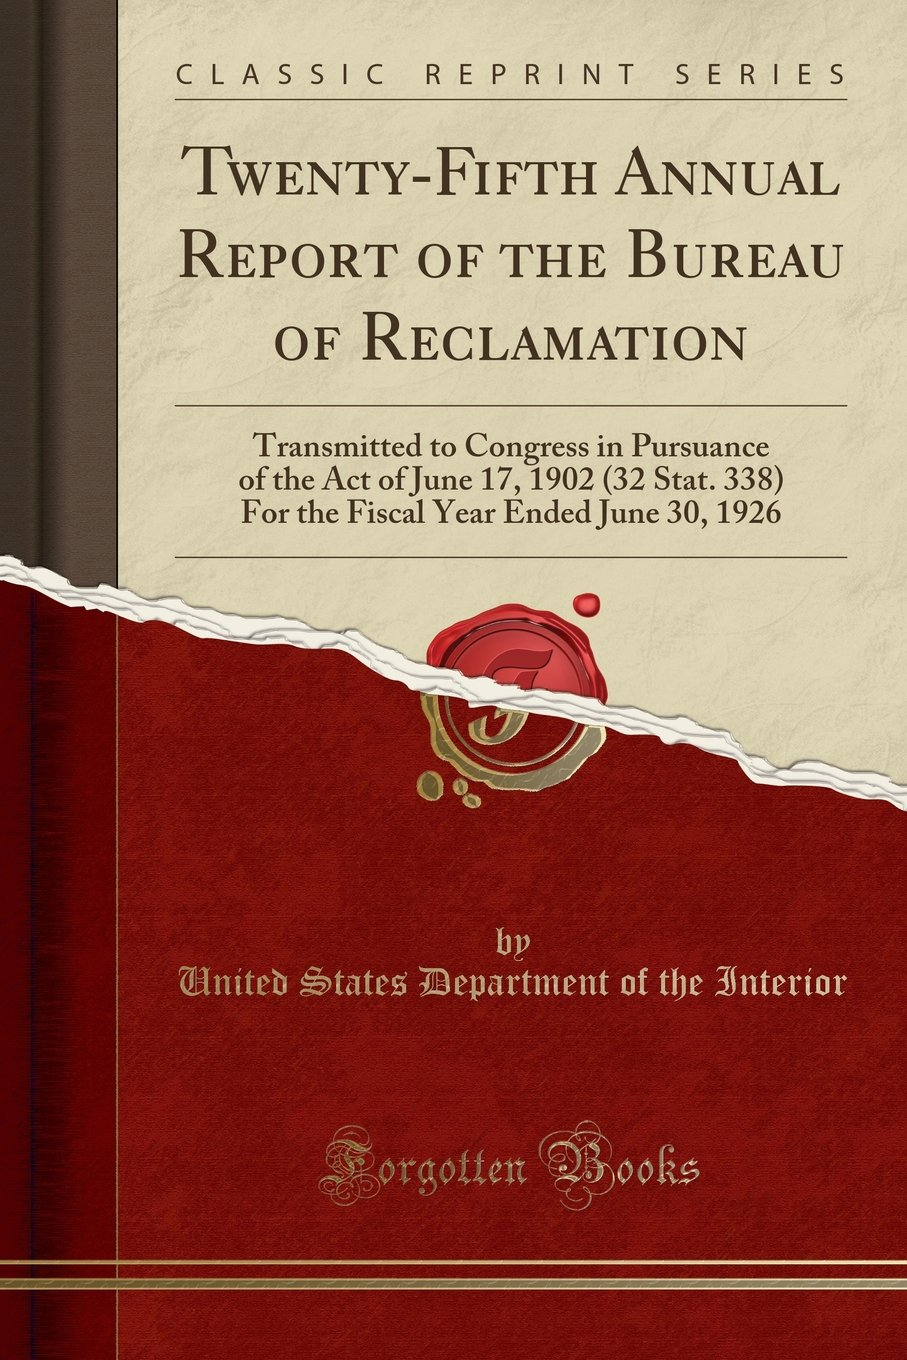 Twenty-Fifth Annual Report of the Bureau of Reclamation: Transmitted to Congress in Pursuance of the Act of June 17, 1902 (32 Stat. 338) For the Fiscal Year Ended June 30, 1926 (Classic Reprint) pdf epub